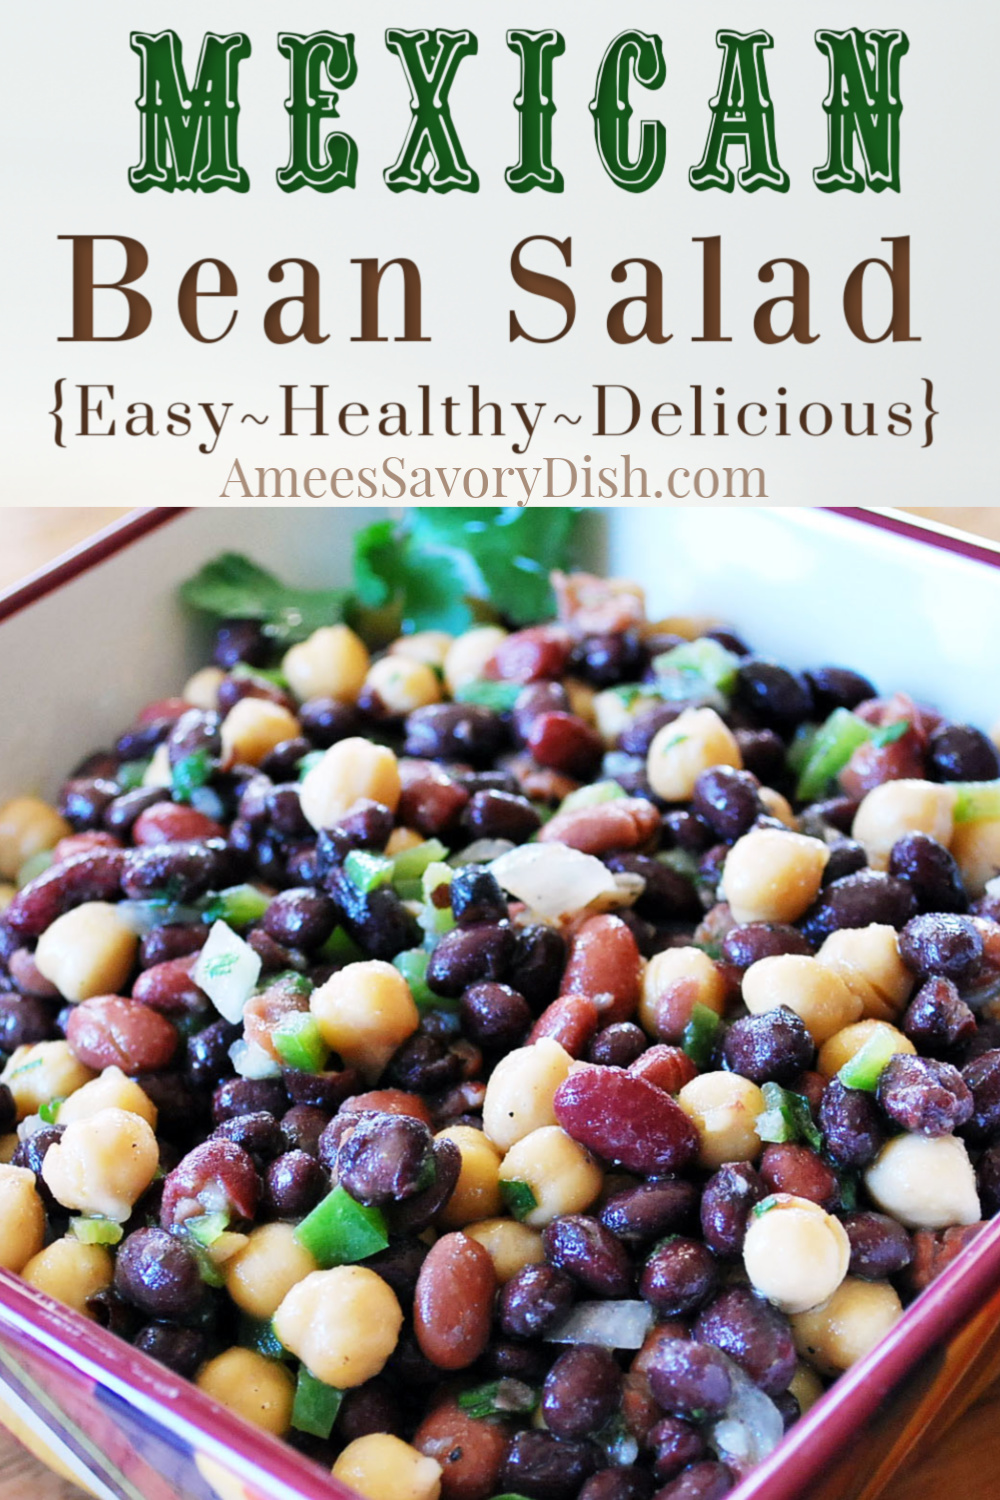 Mexican bean salad is a healthy side dish, full of fiber and flavor! This easy bean salad recipe uses three different types of beans, crisp vegetables, and Mexican seasonings. #beanssalad #beanrecipe #mexicanfood #mexicansalad #sidedishrecipe via @Ameessavorydish